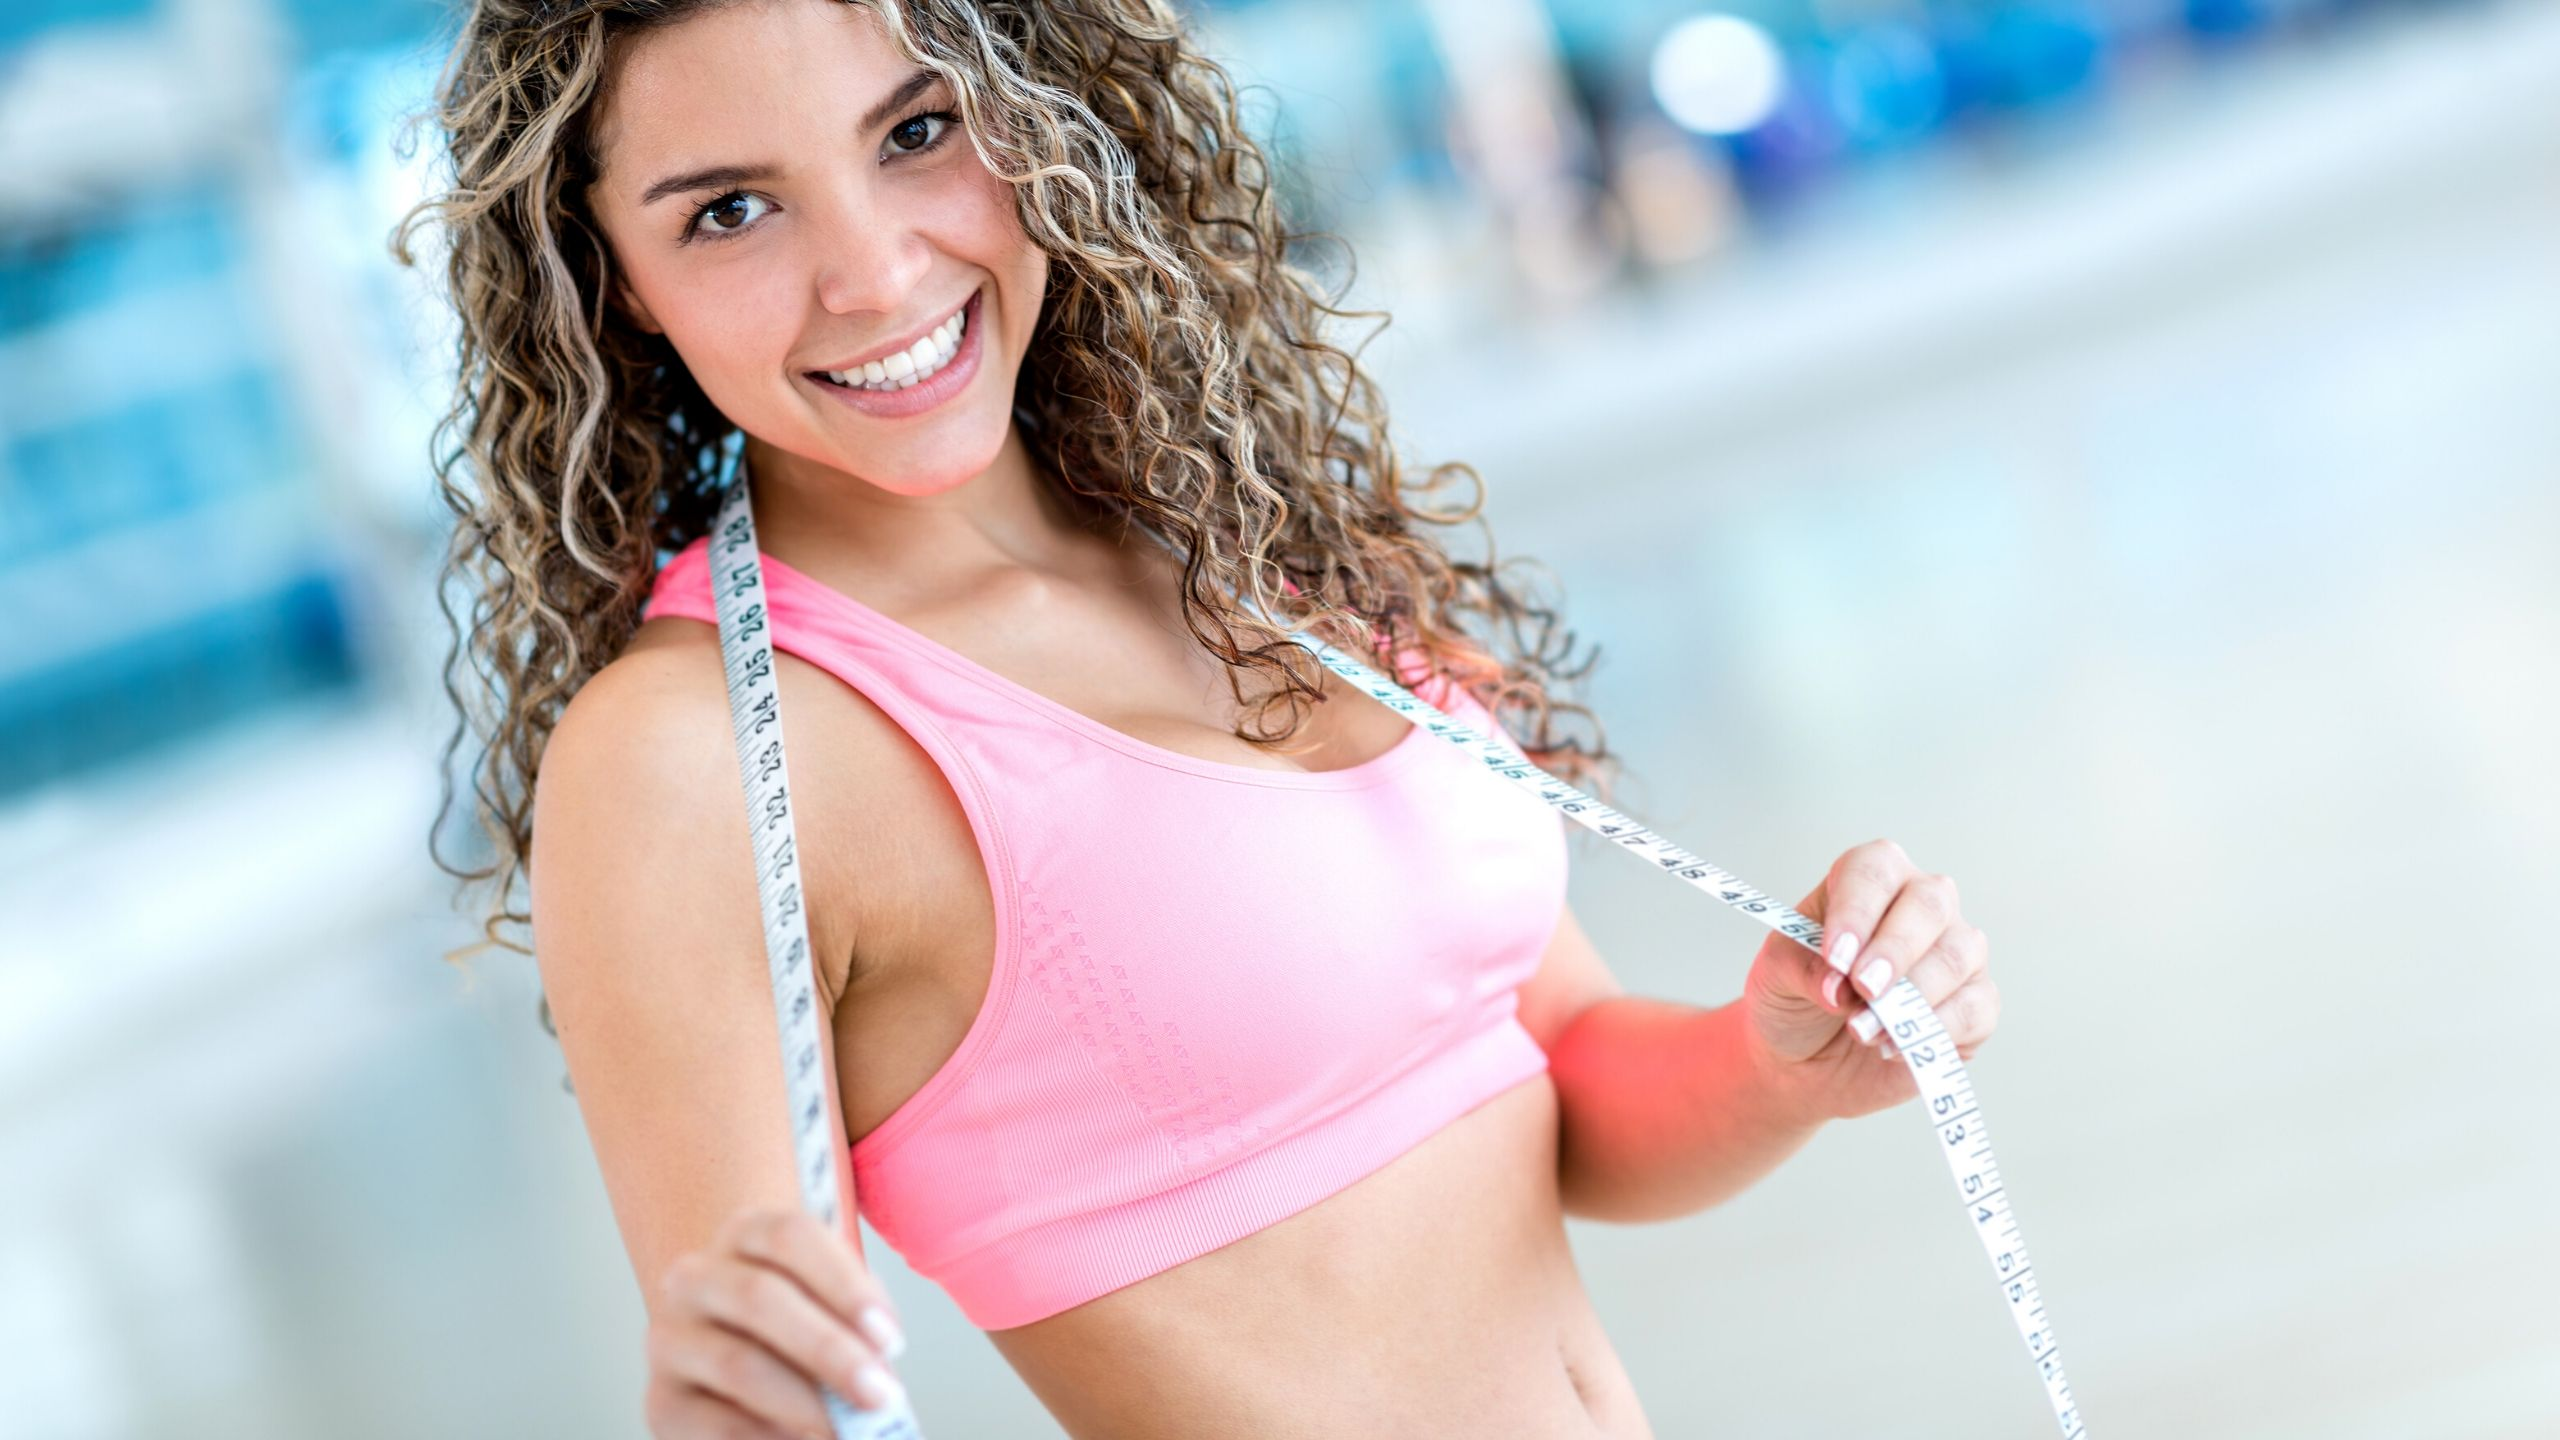 9 Ways to Lose Weight Without any Exercise and Dieting